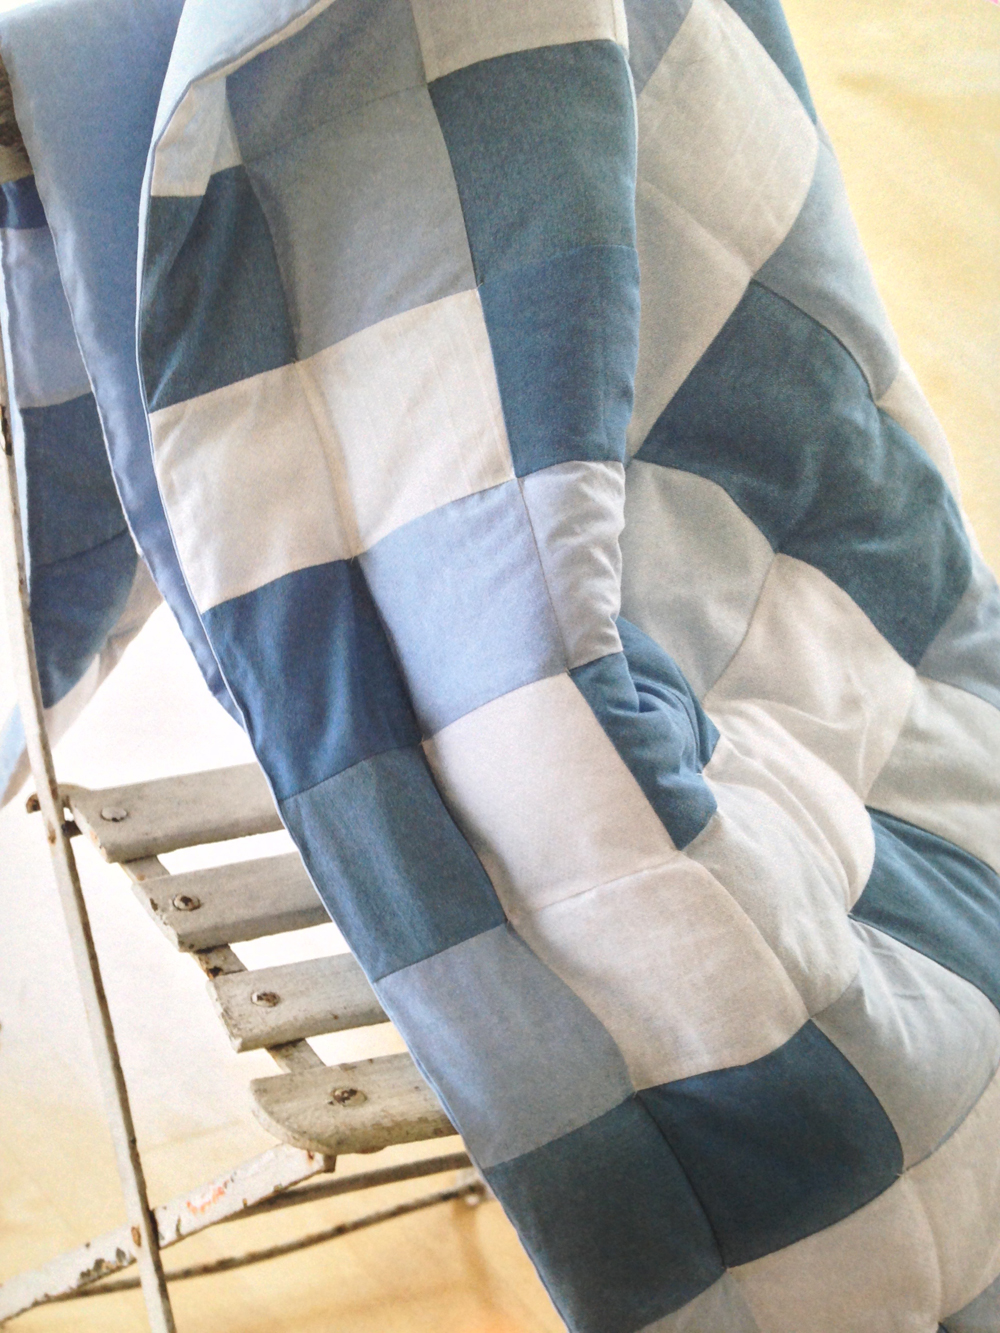 Tie or Knot Your Quilt Layers Together - Wise Craft Handmade : knotting quilts - Adamdwight.com